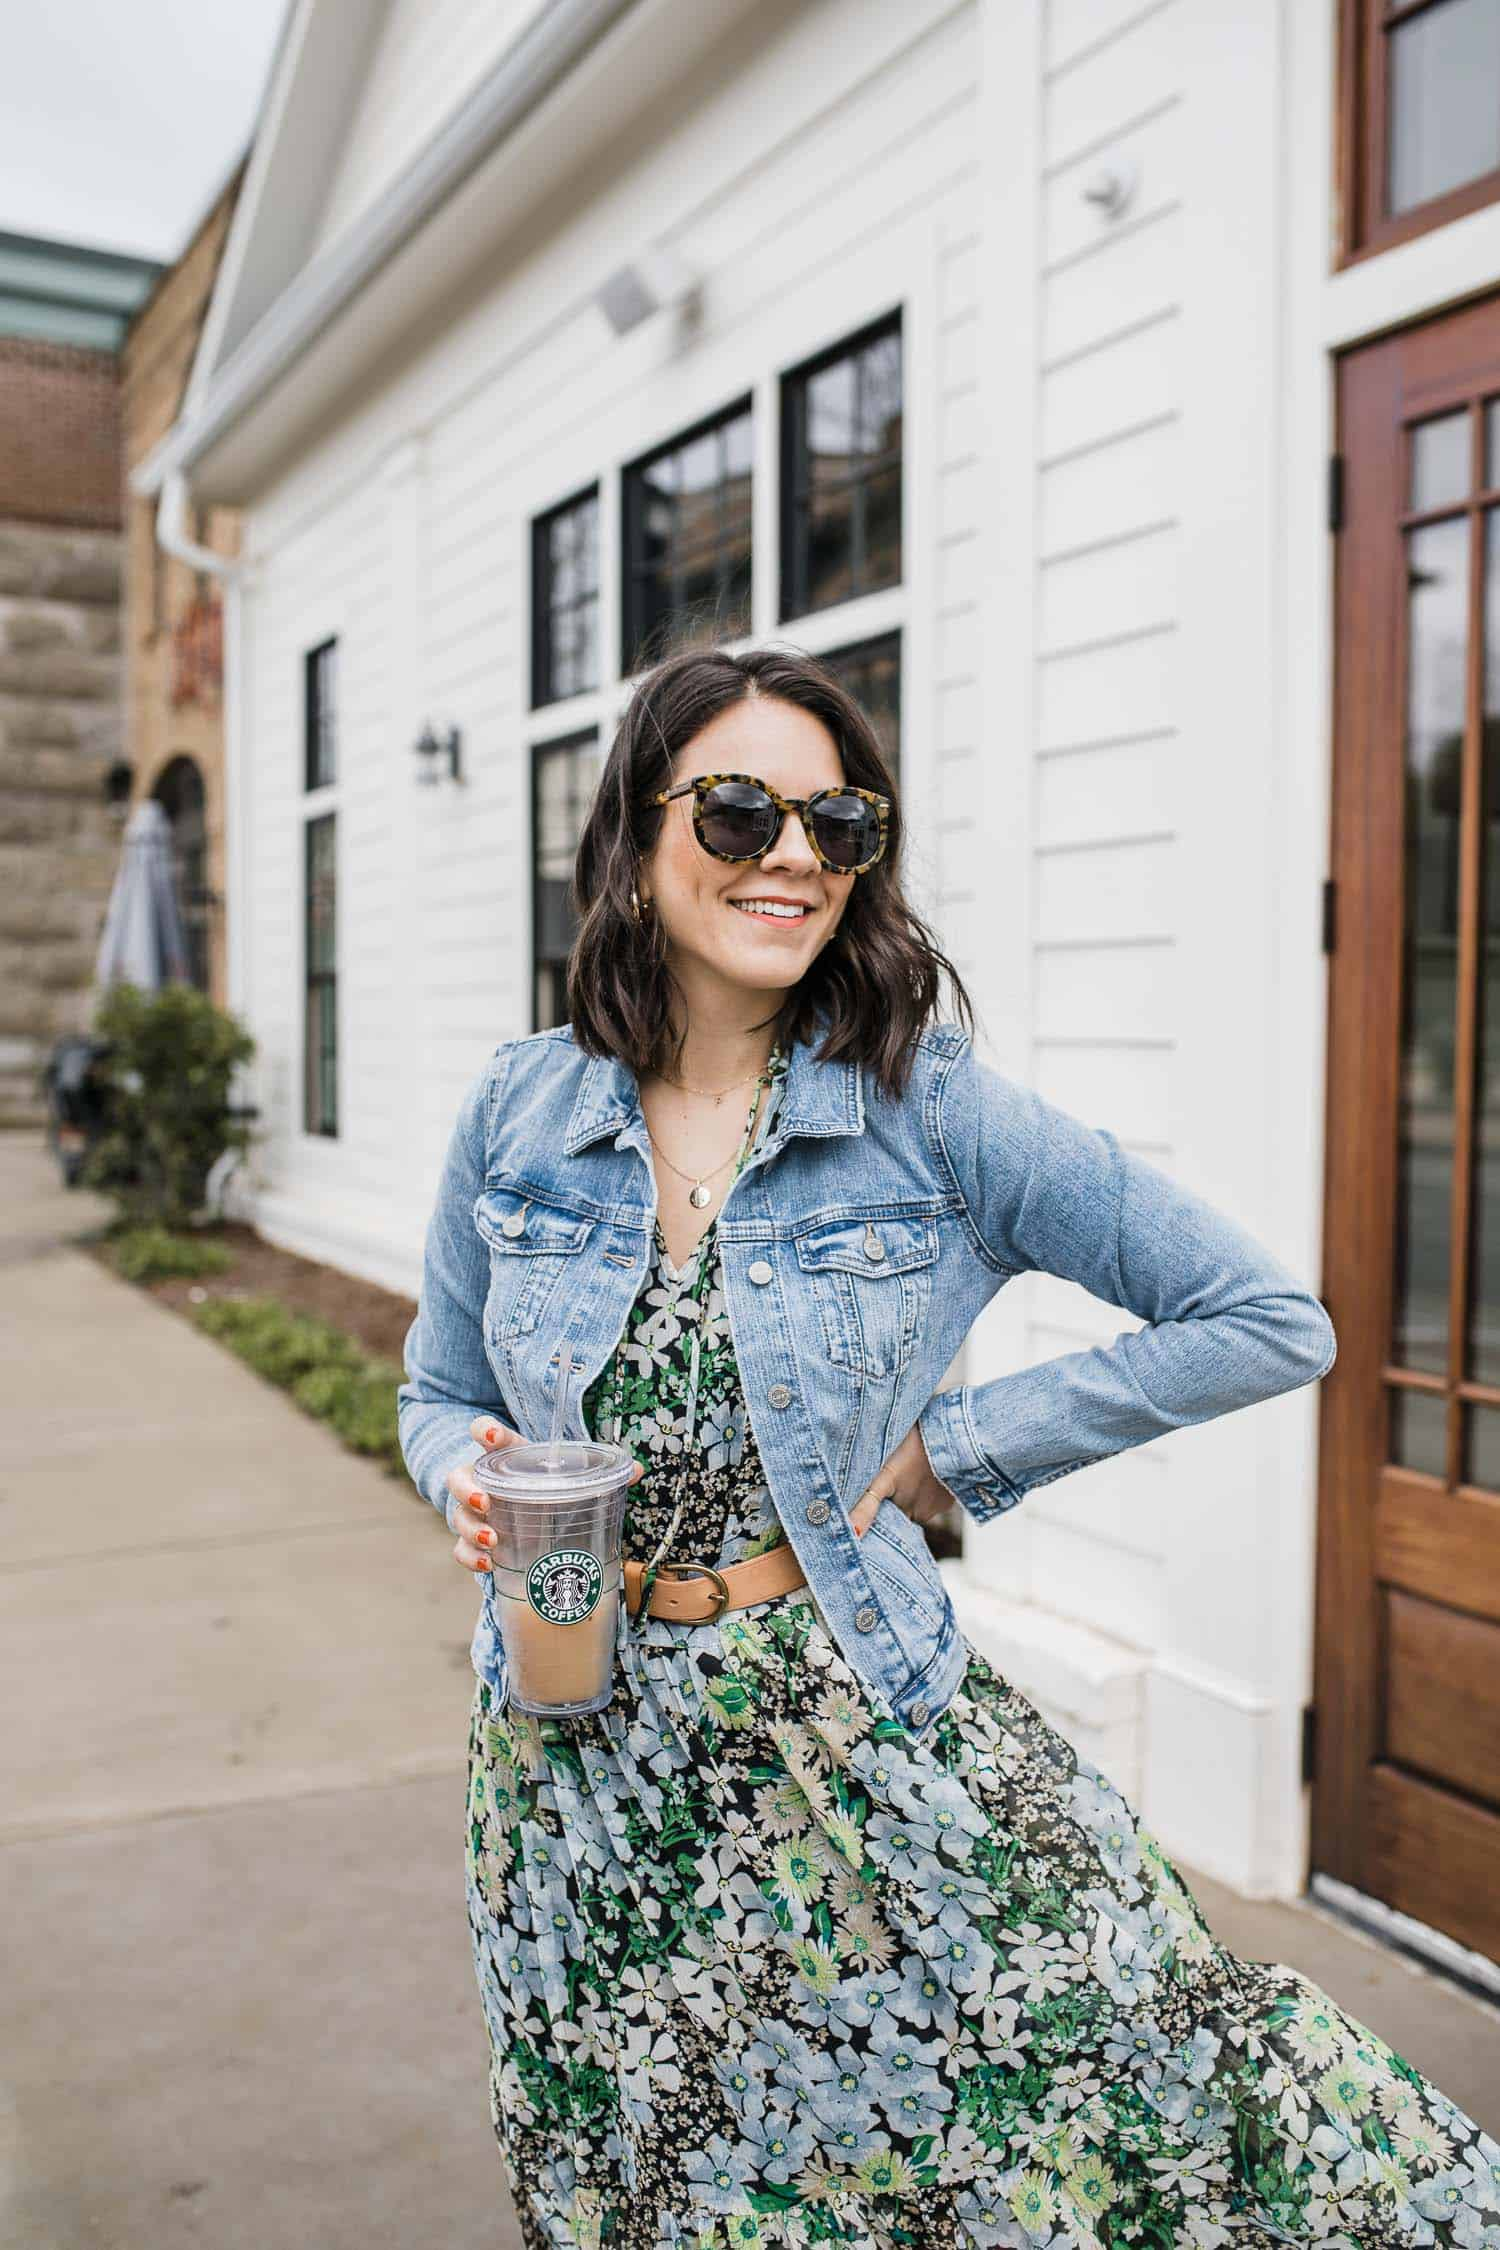 jessica camerata wears a denim jacket with a floral dress